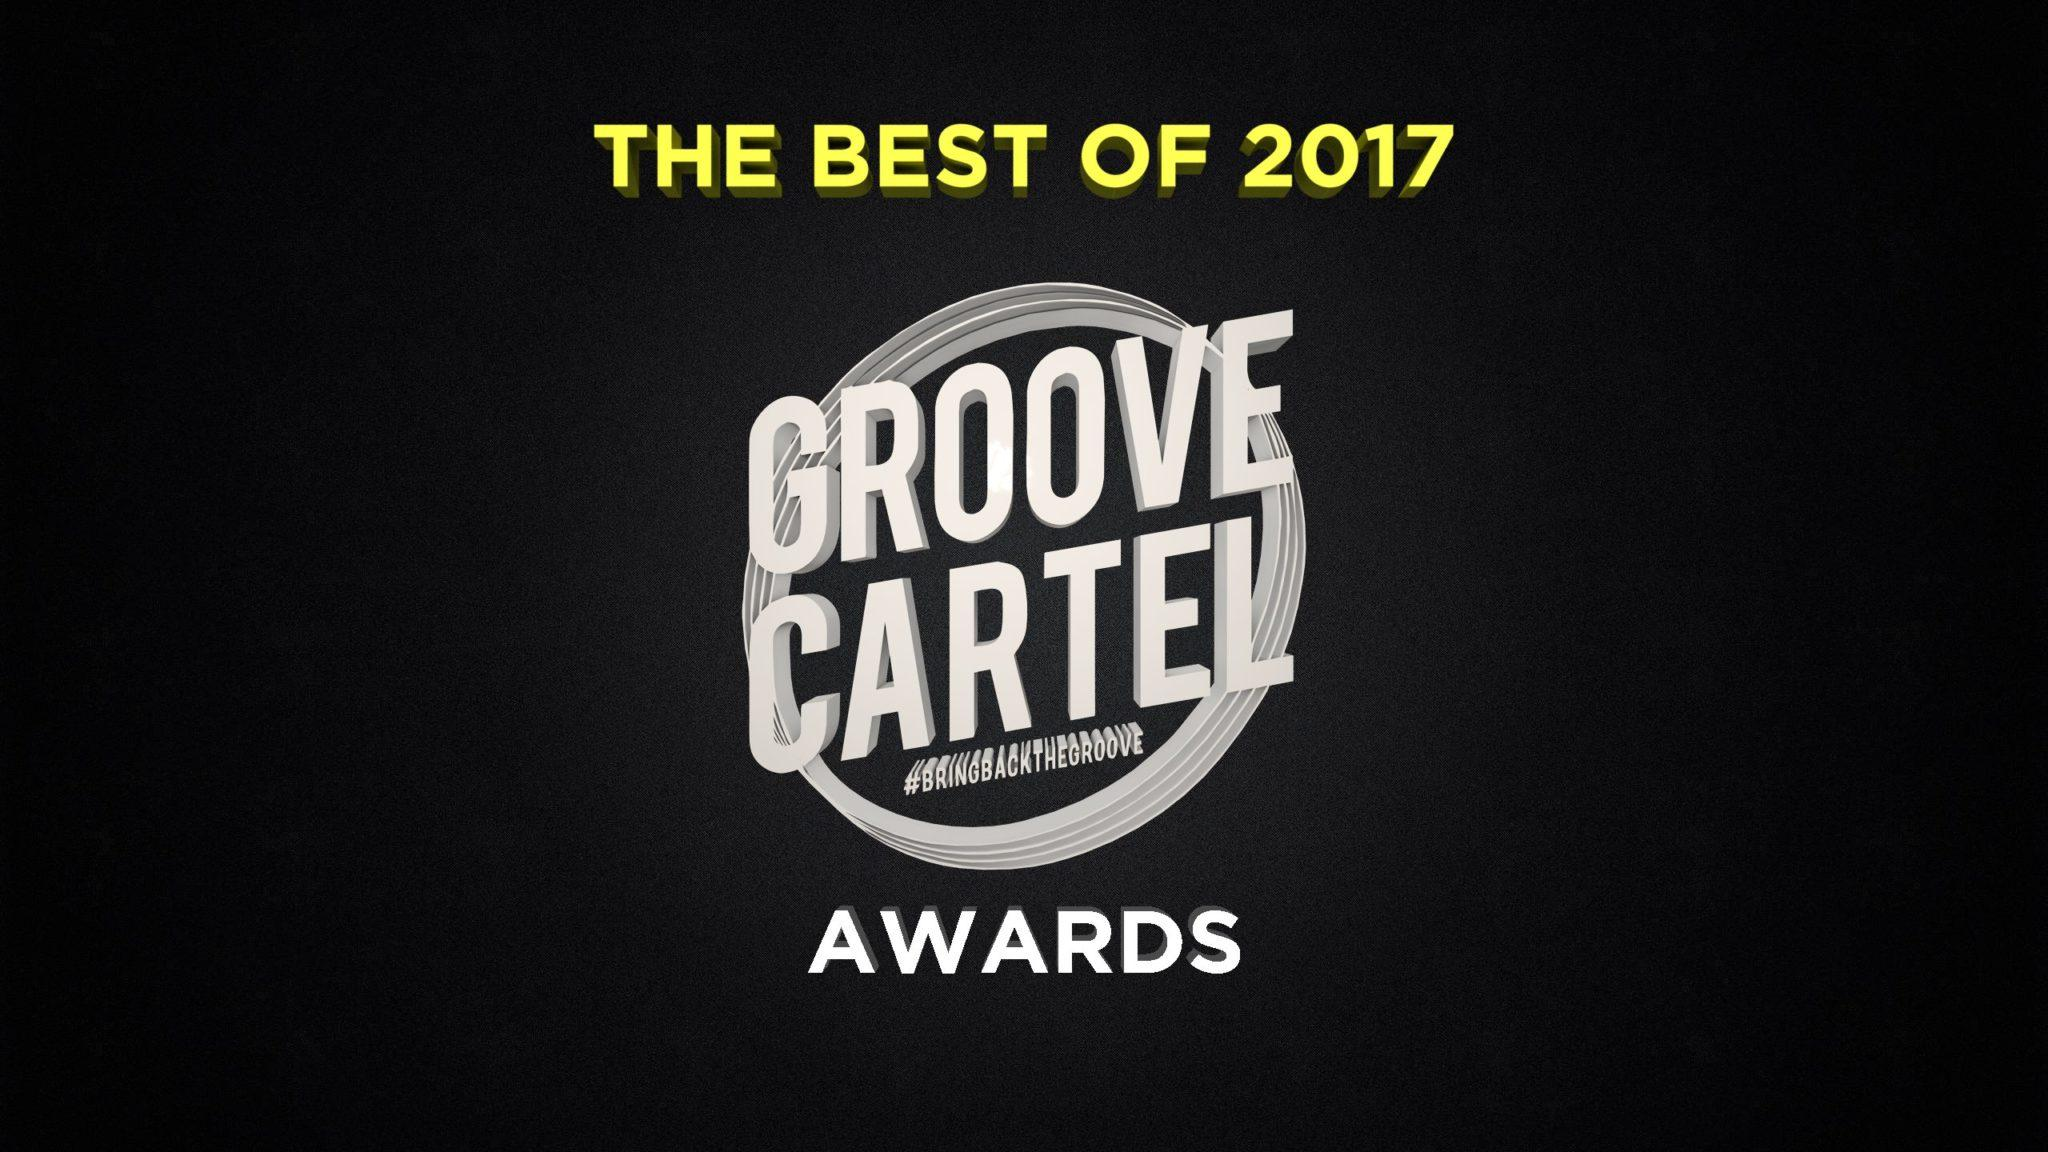 the groove cartel